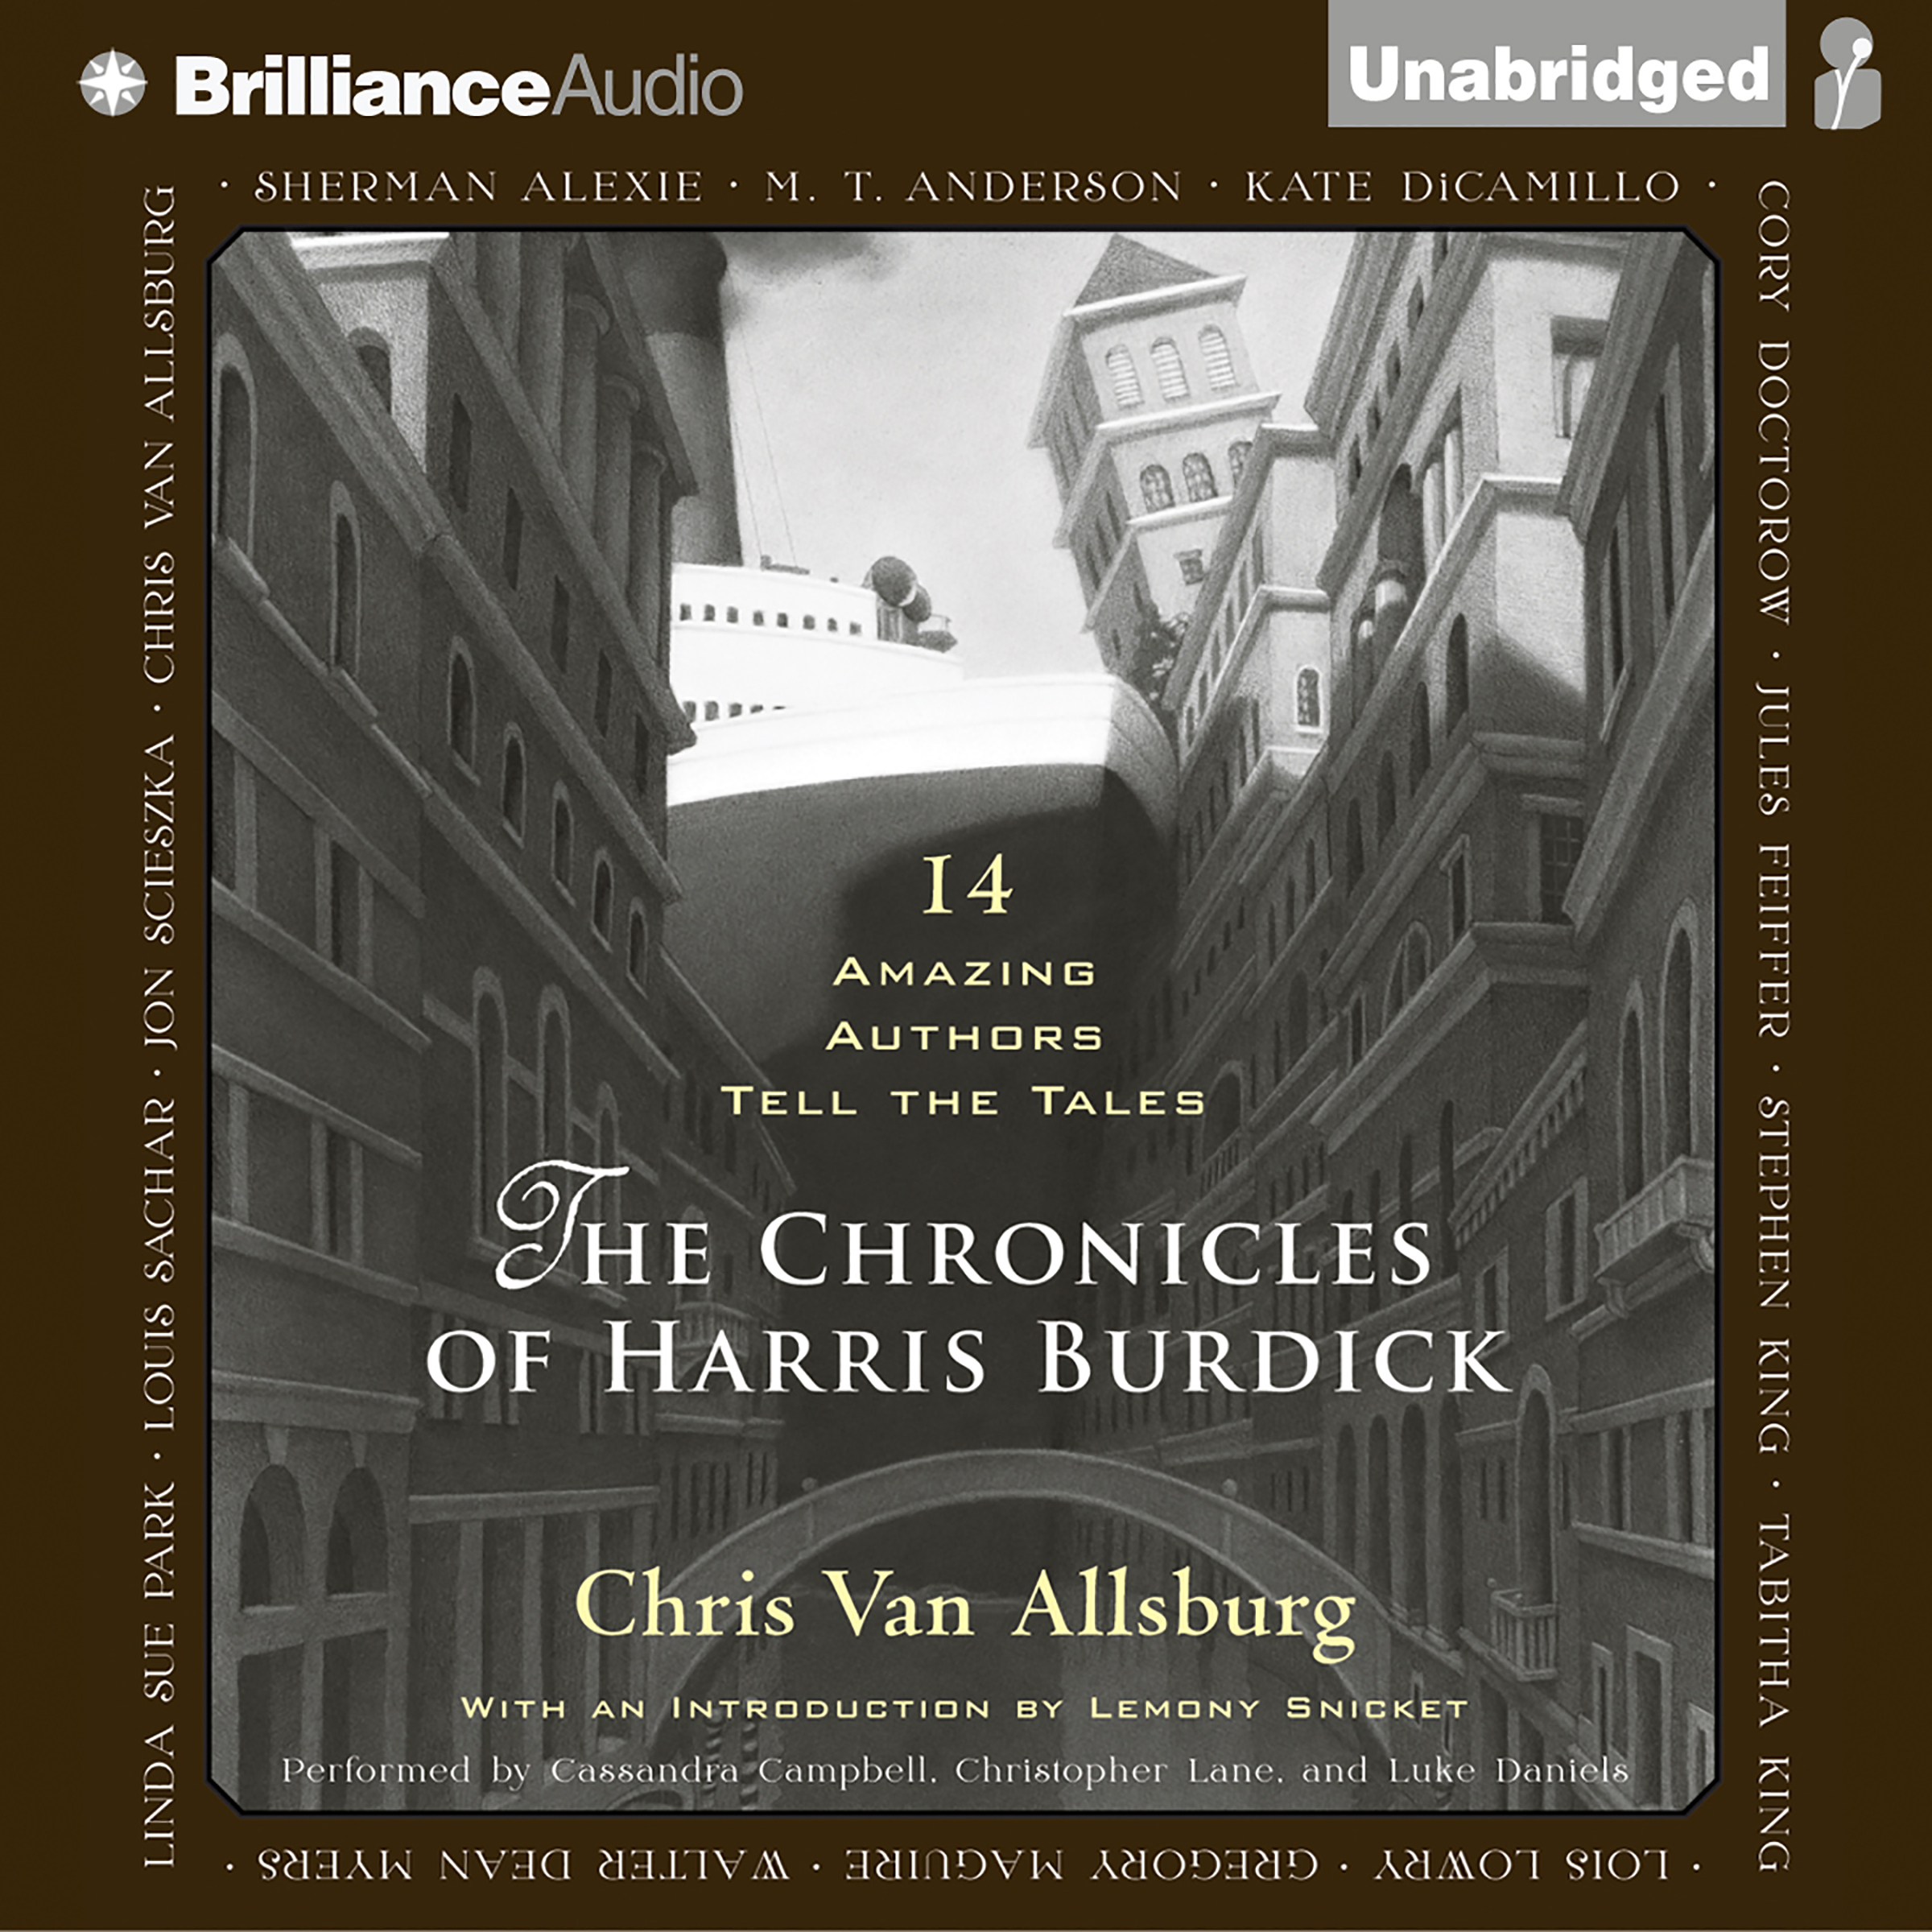 Printable The Chronicles of Harris Burdick: Fourteen Amazing Authors Tell the Tales / With an Introduction by Lemony Snicket Audiobook Cover Art